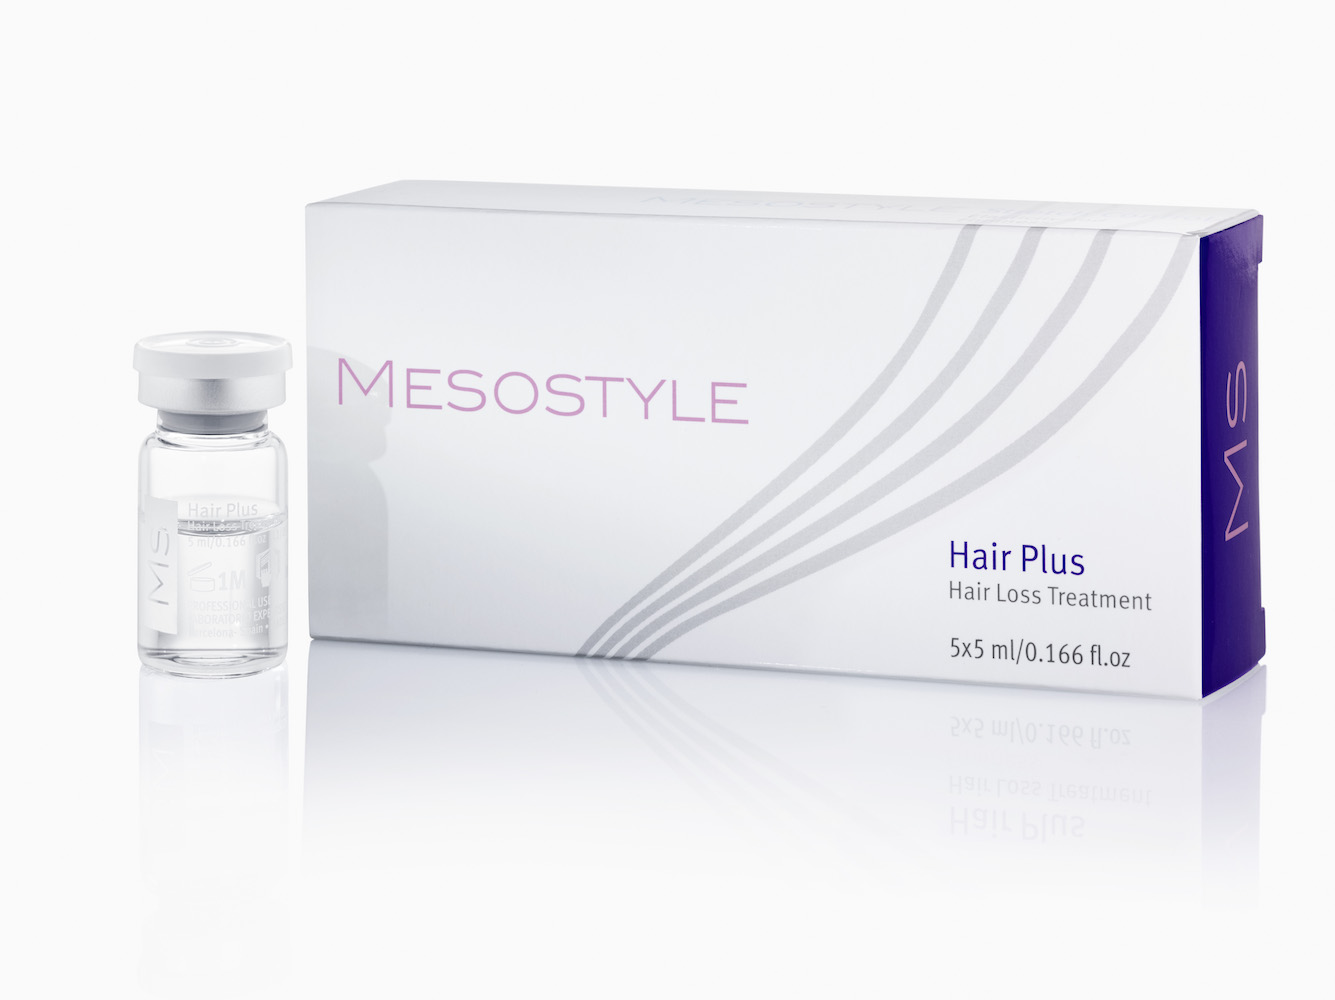 Mesostyle Hair Plus